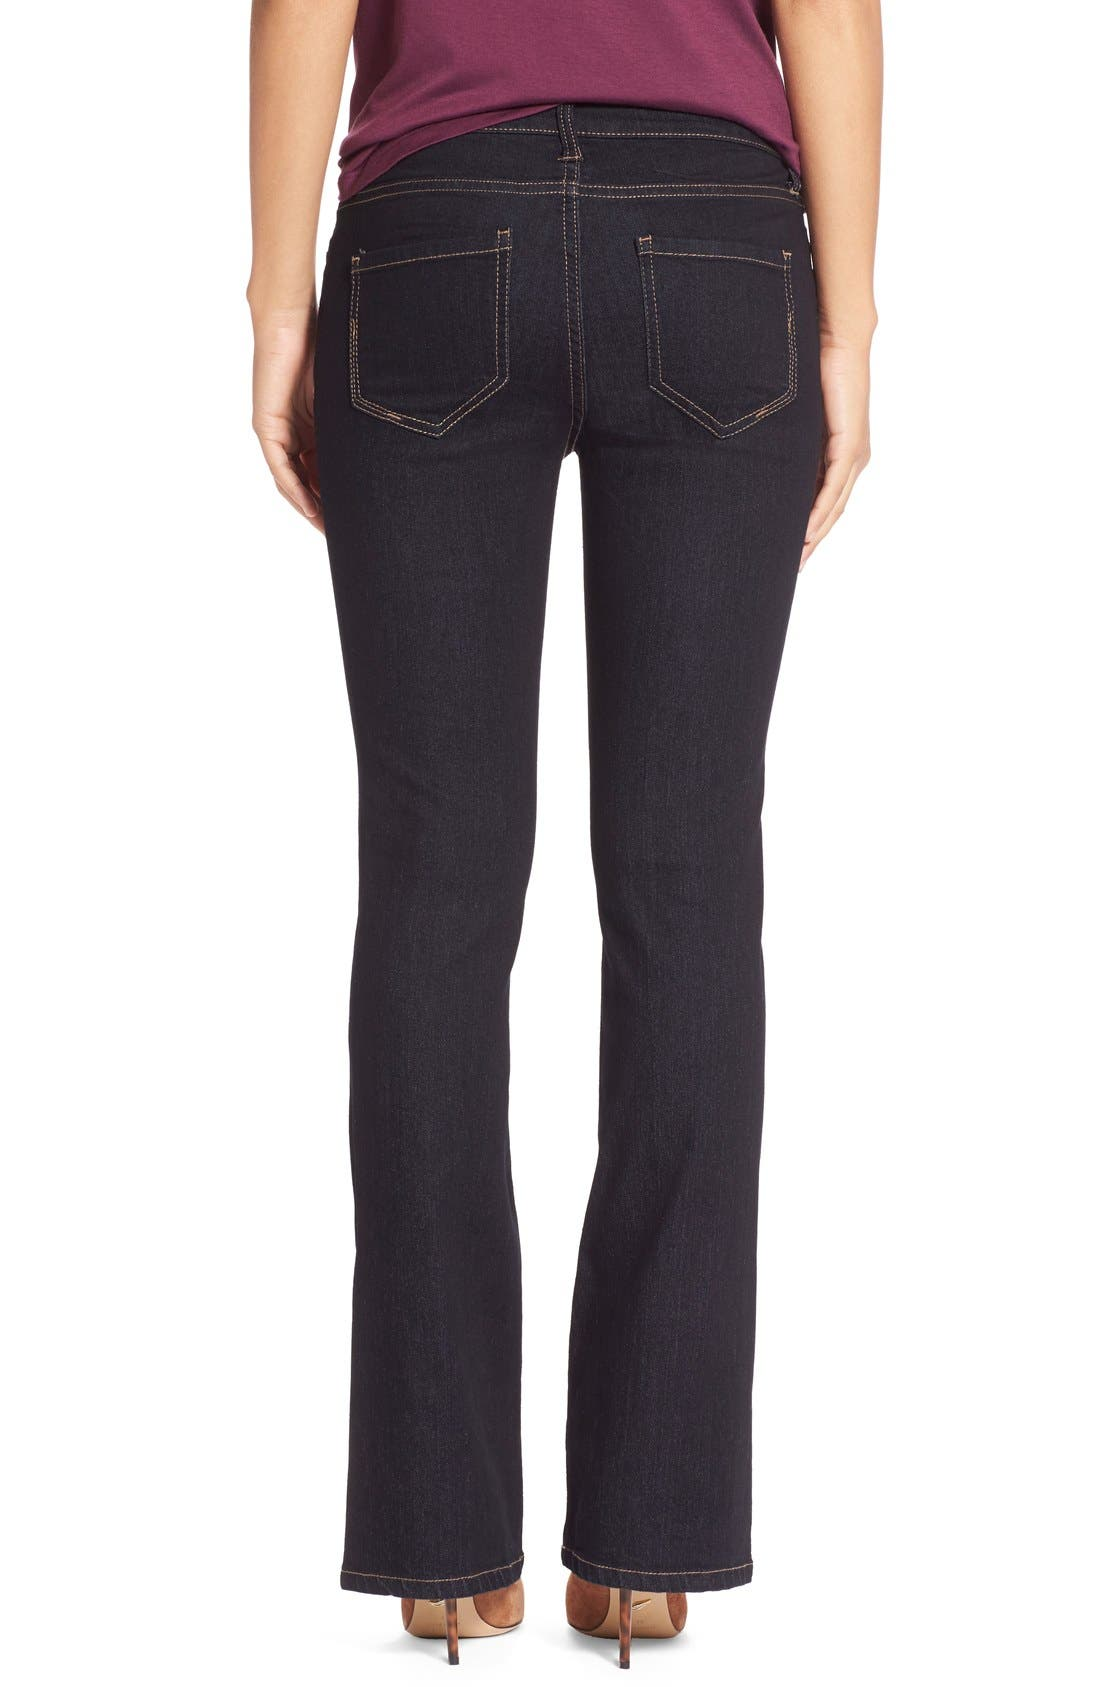 Lucy Stretch BootcutJeans,                             Alternate thumbnail 2, color,